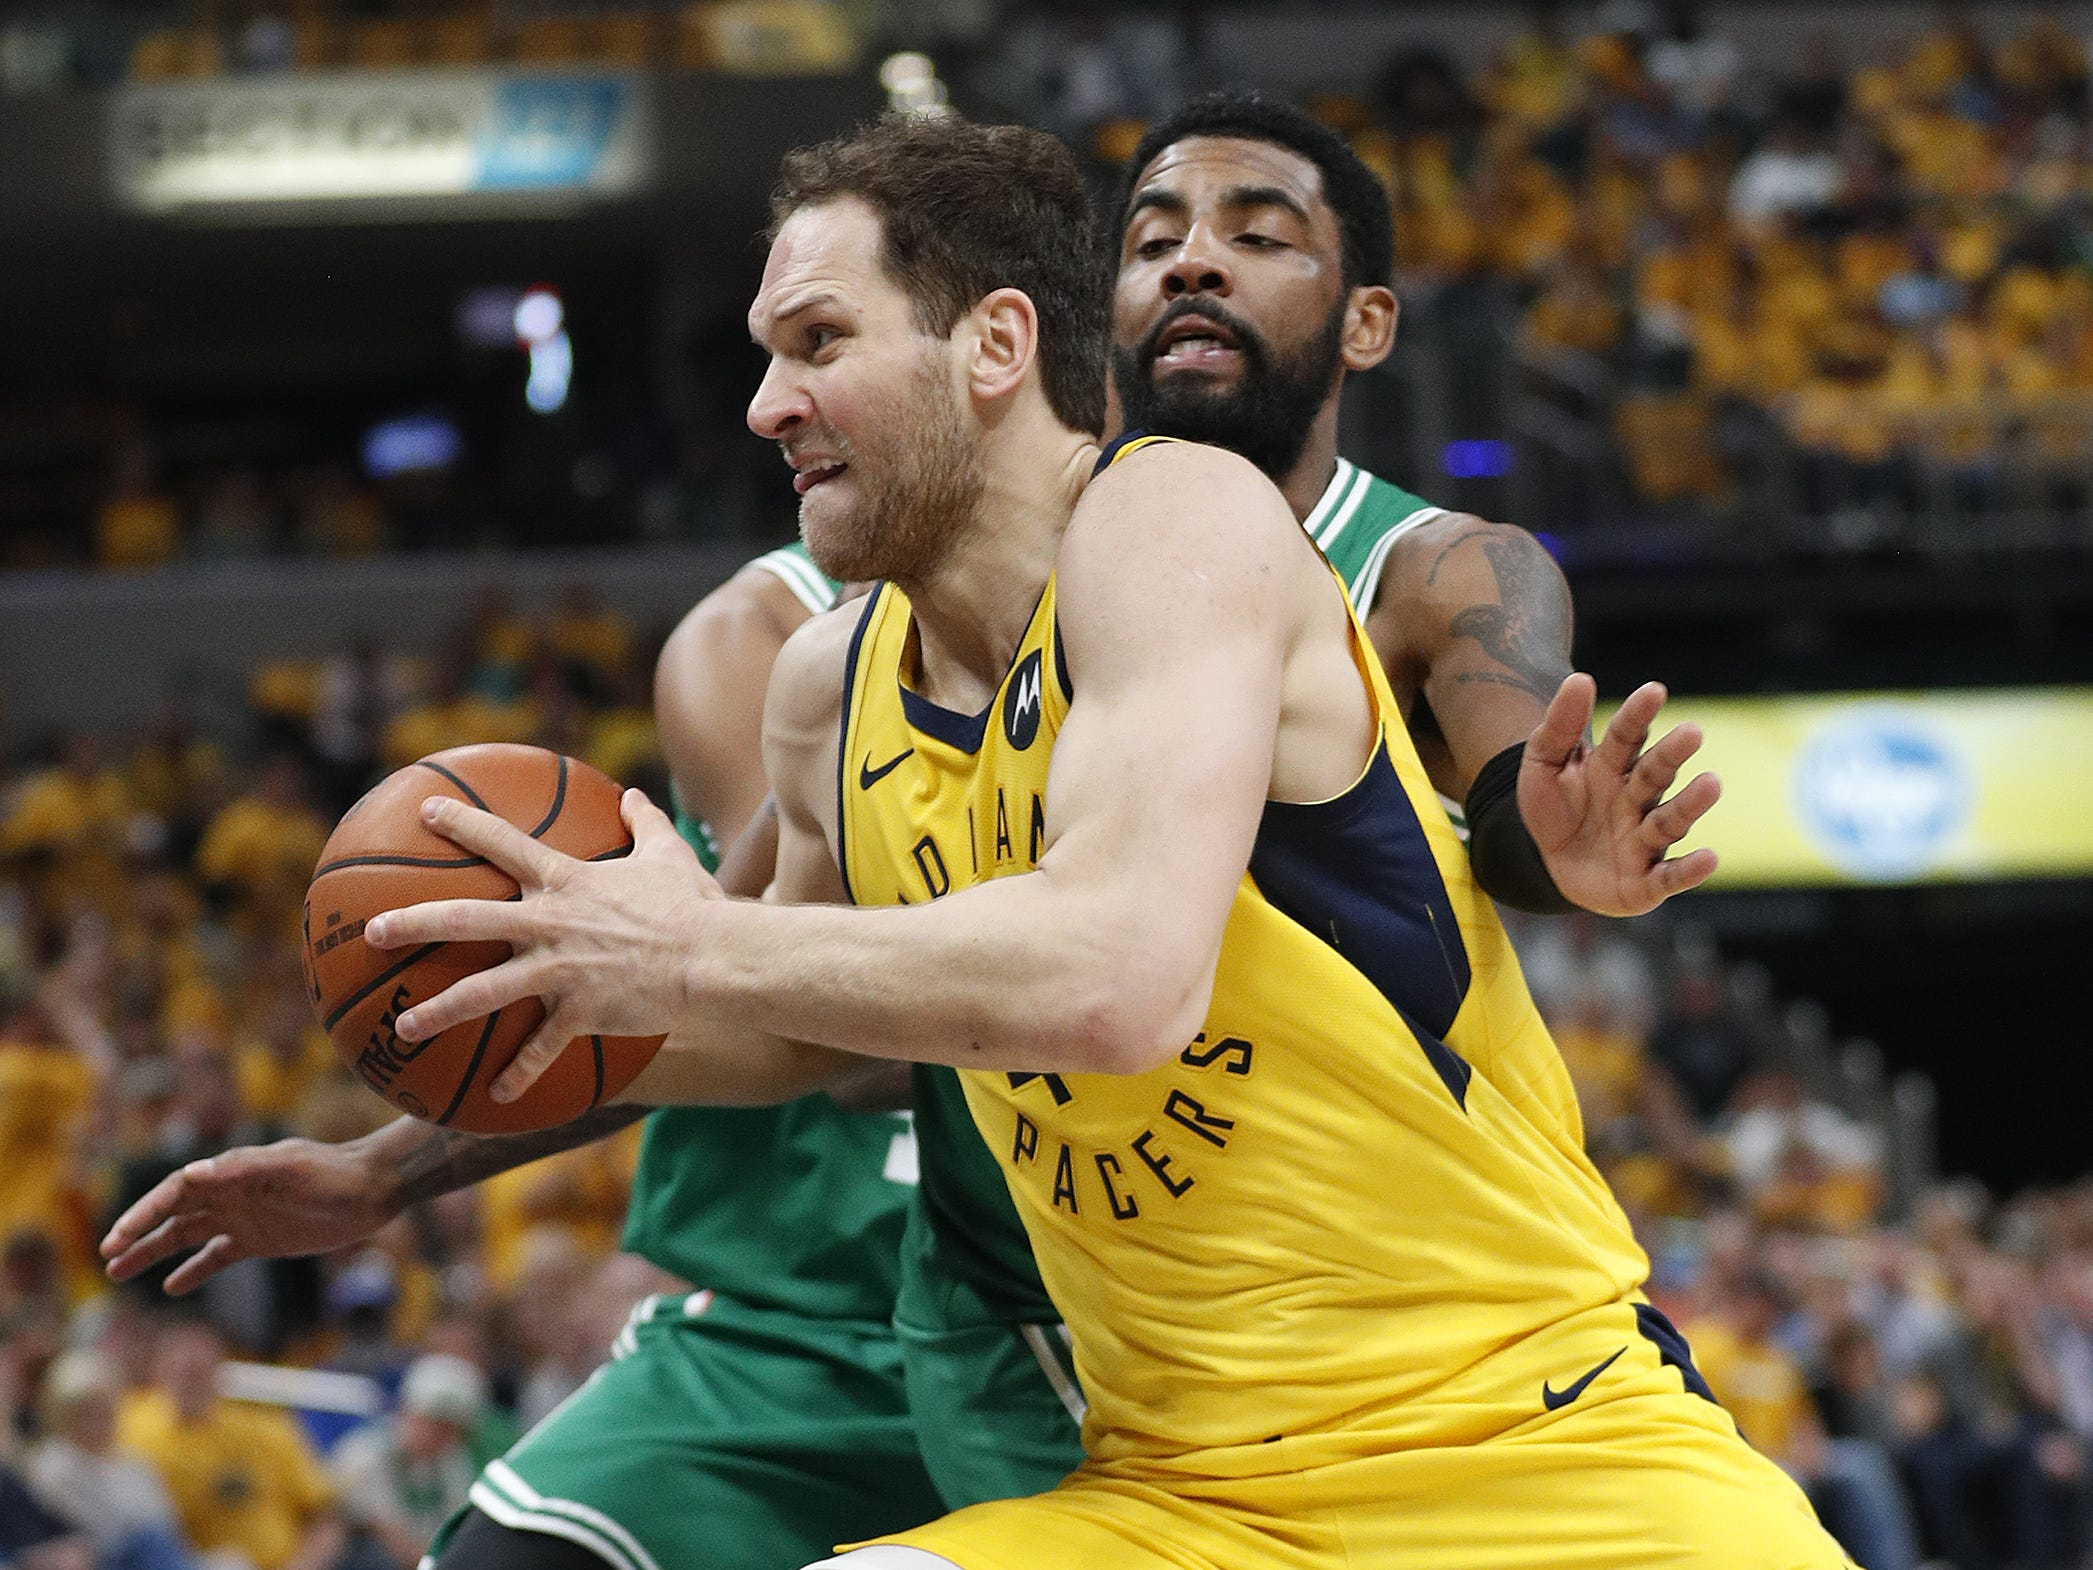 Pacers season ends with Game 4 loss to Celtics